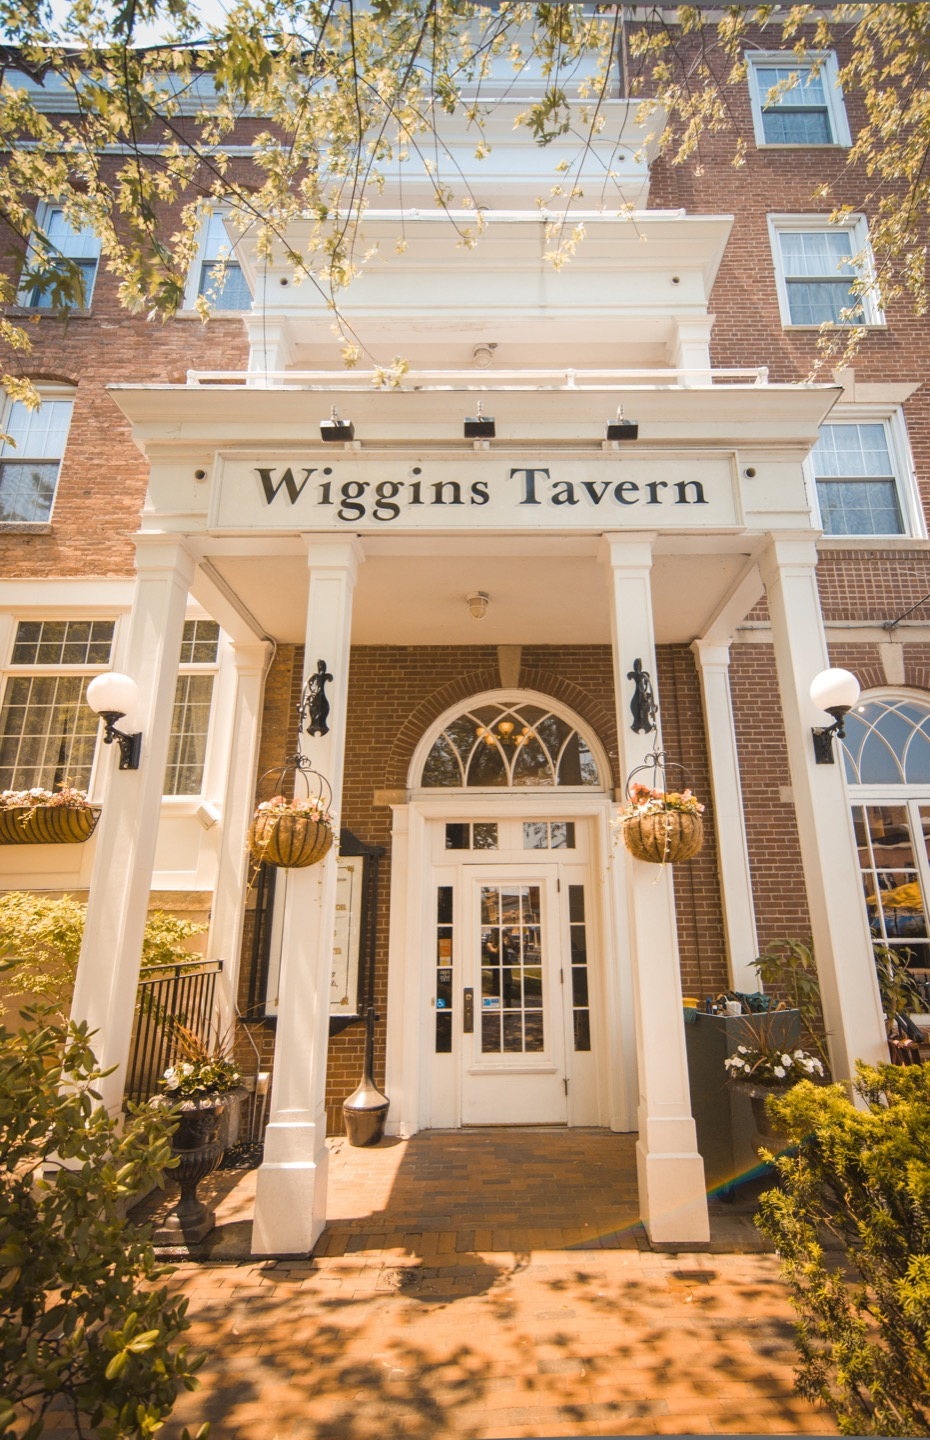 Wiggins Tavern outside entrance